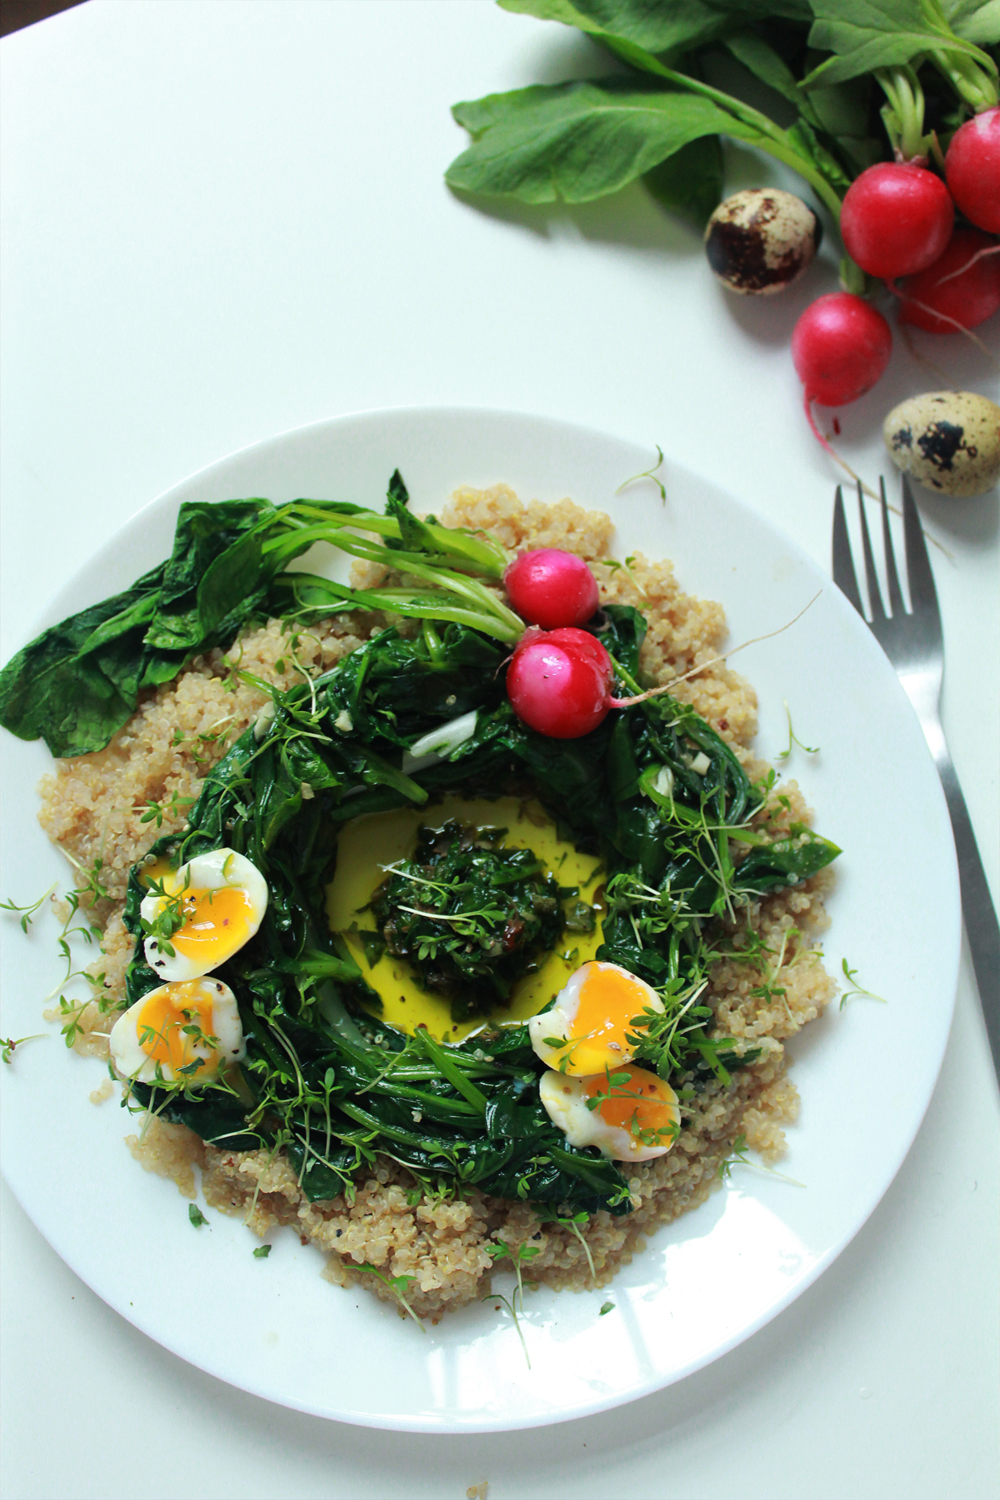 Quinoa & bulgur salad with spinach, chards, radishes, soft-boiled eggs and capper pesto (via inwhirlofinspiration.com)